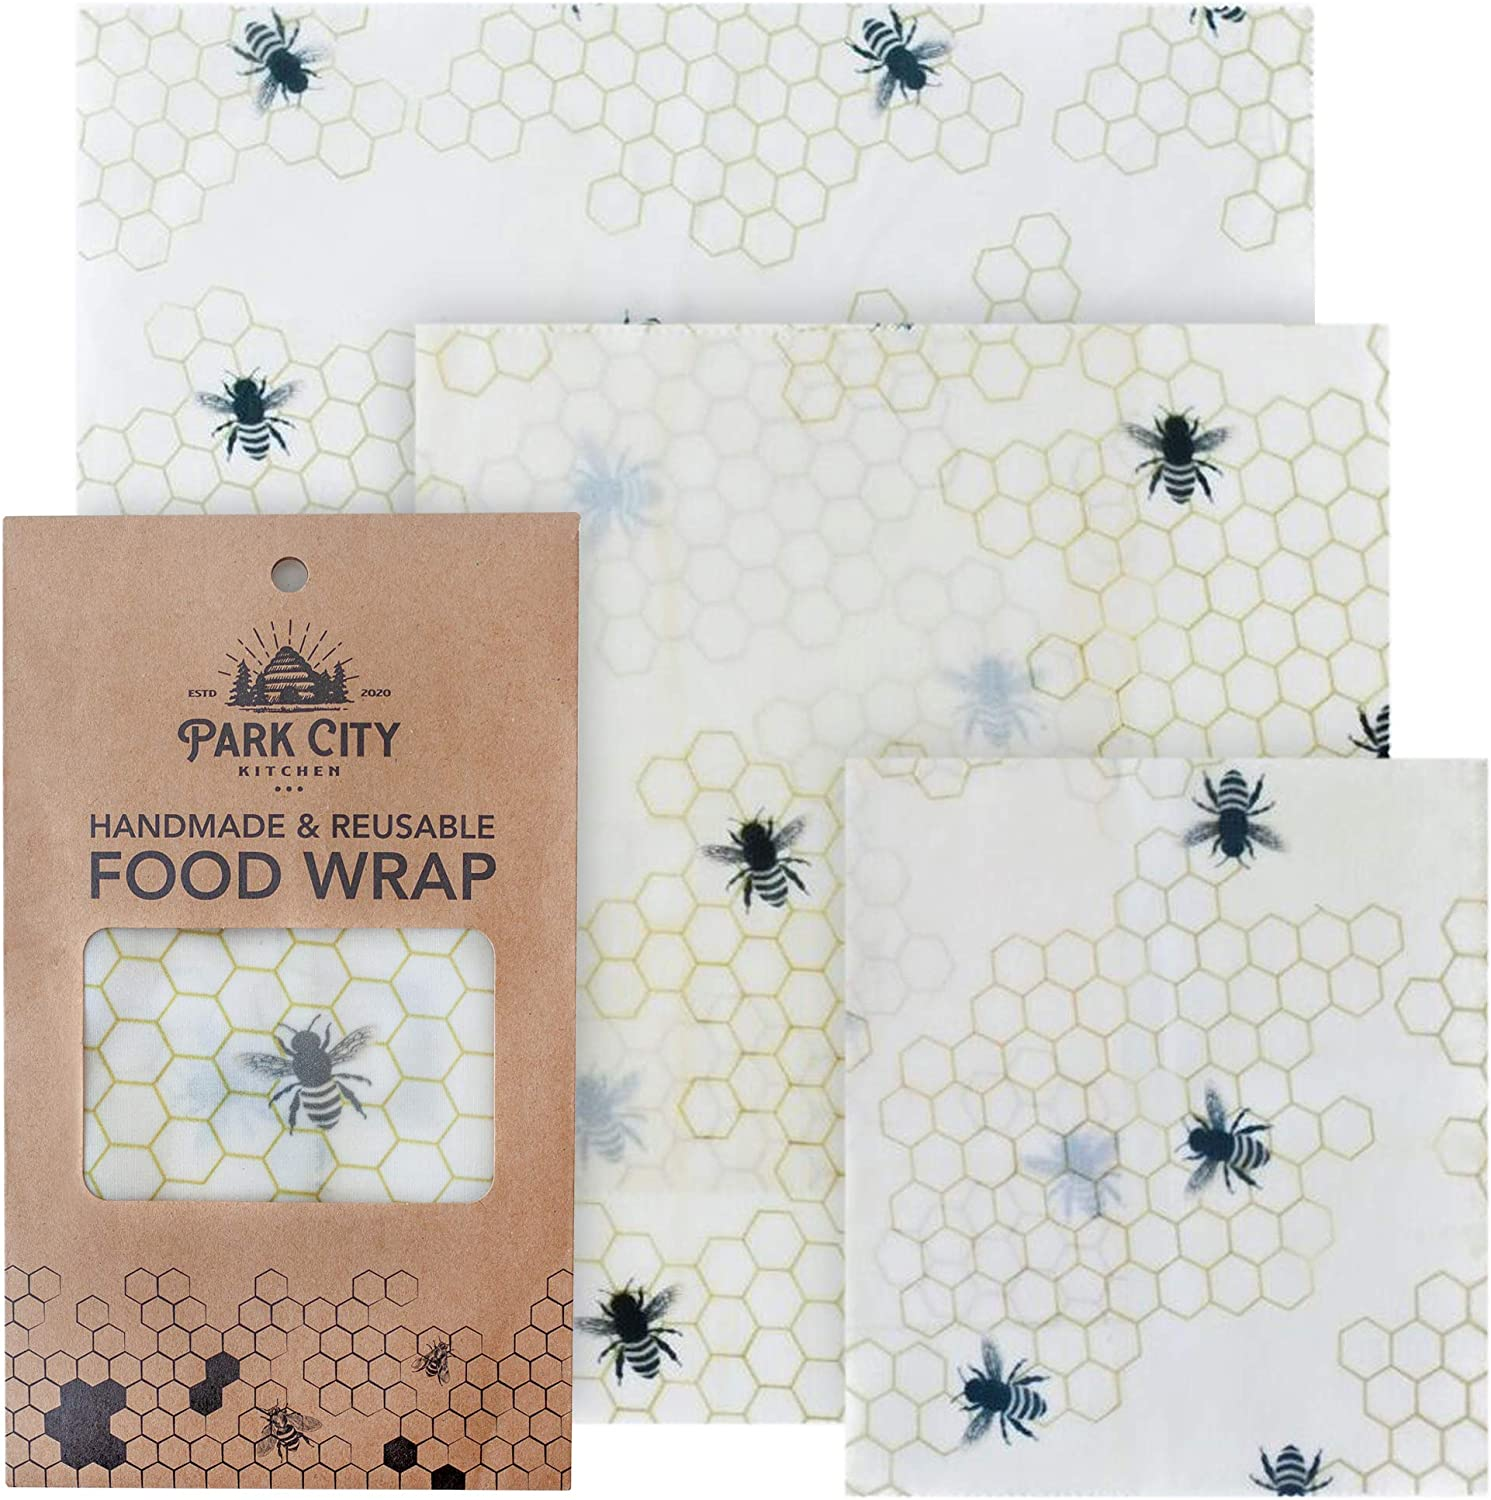 Beeswax Reusable Food Wraps Set of 3 (S, M, L) - Eco Friendly & Biodegradable Alternative to Plastic Wrap - Bees Wax Bowl Covers made with GOTS Organic Cotton & Natural Jojoba Oil